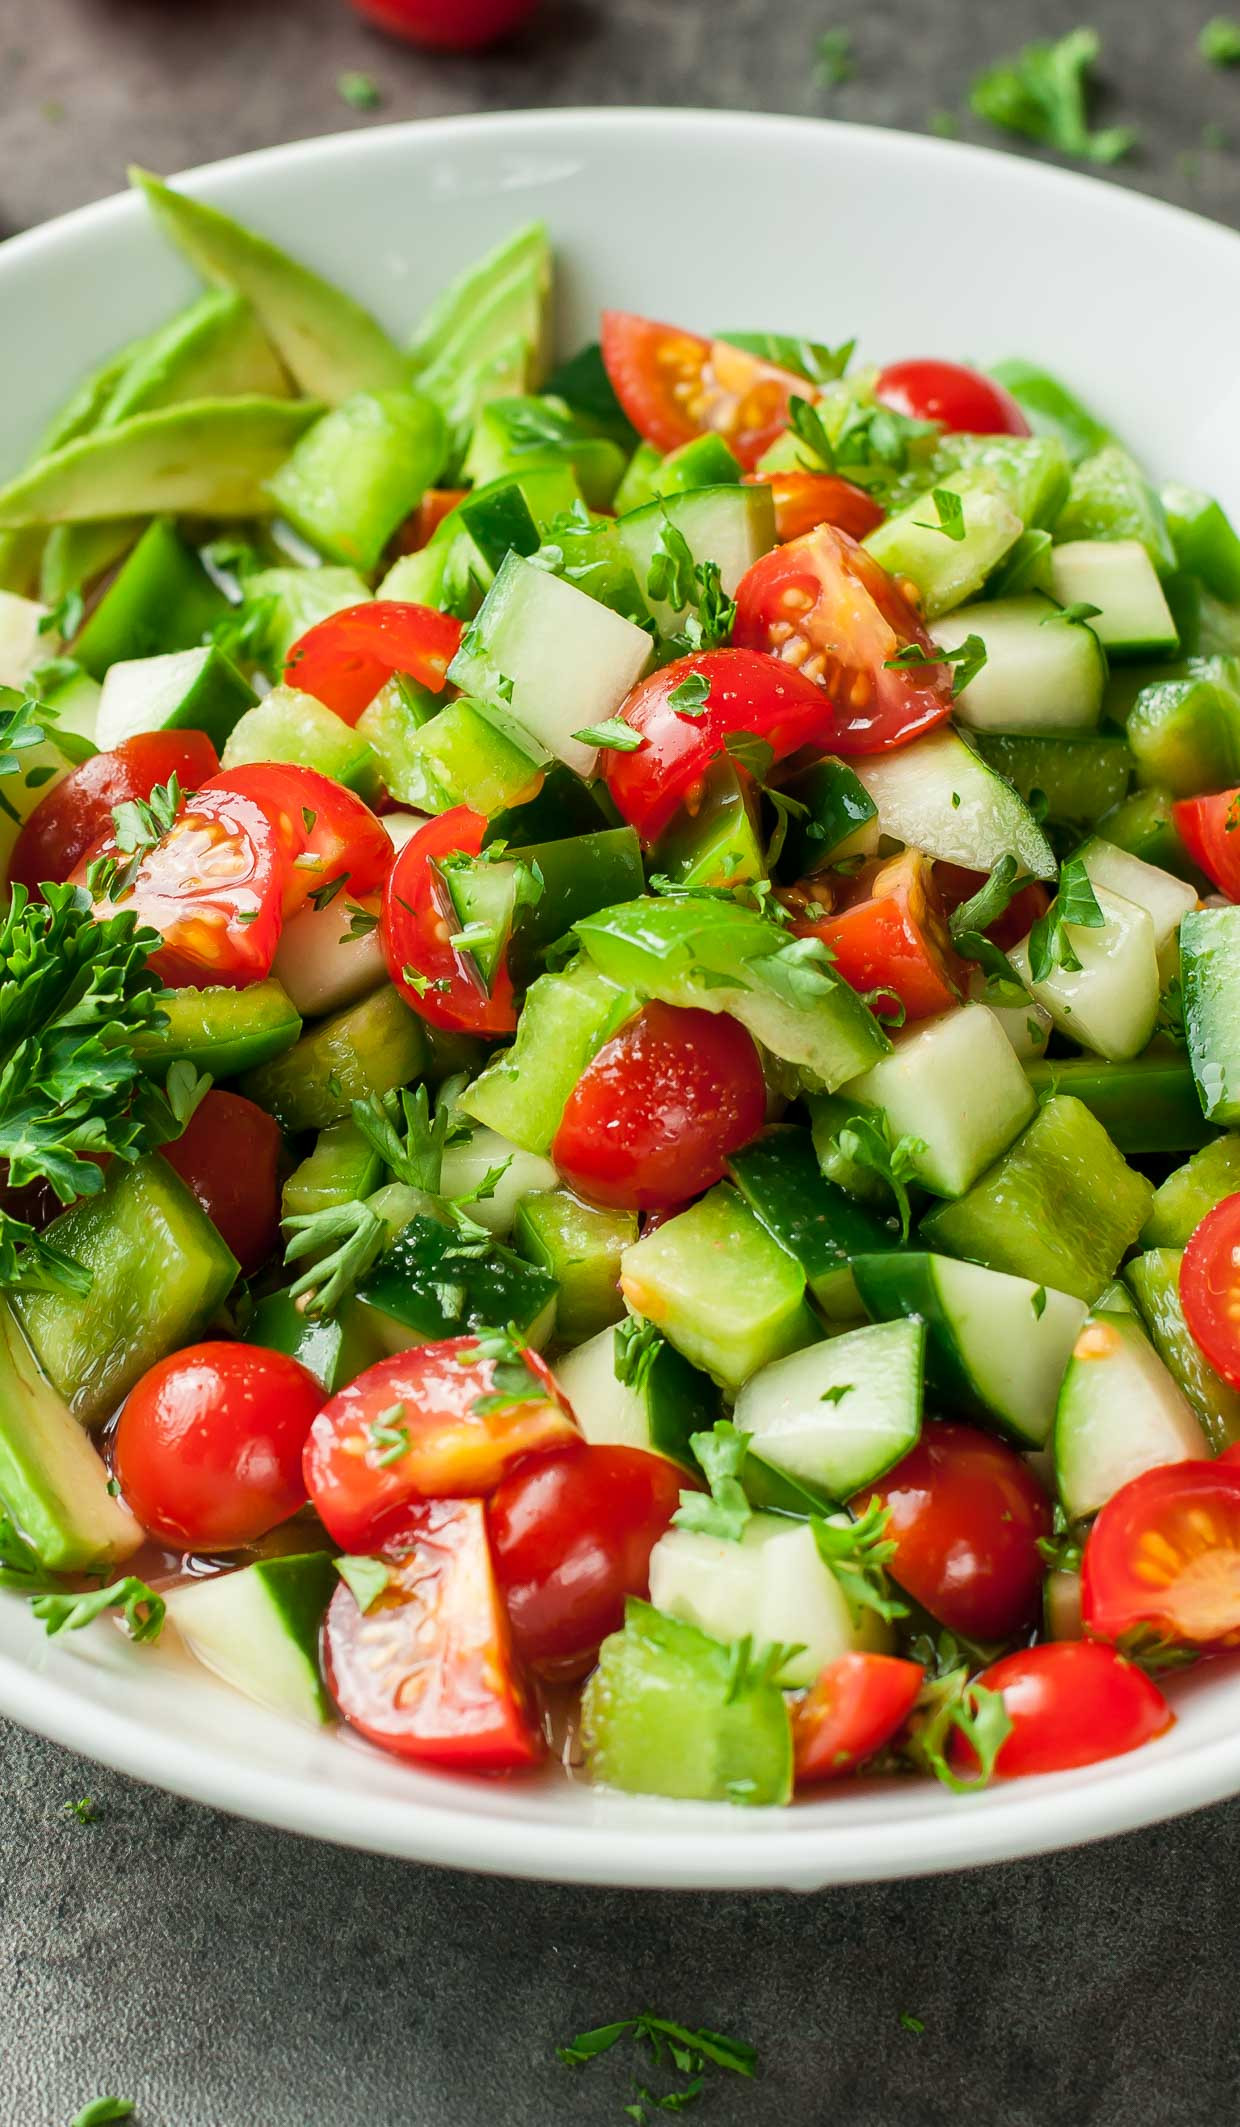 Healthy Tasty Salads  12 Tasty Recipes to Step Up Your Salad Game Peas And Crayons